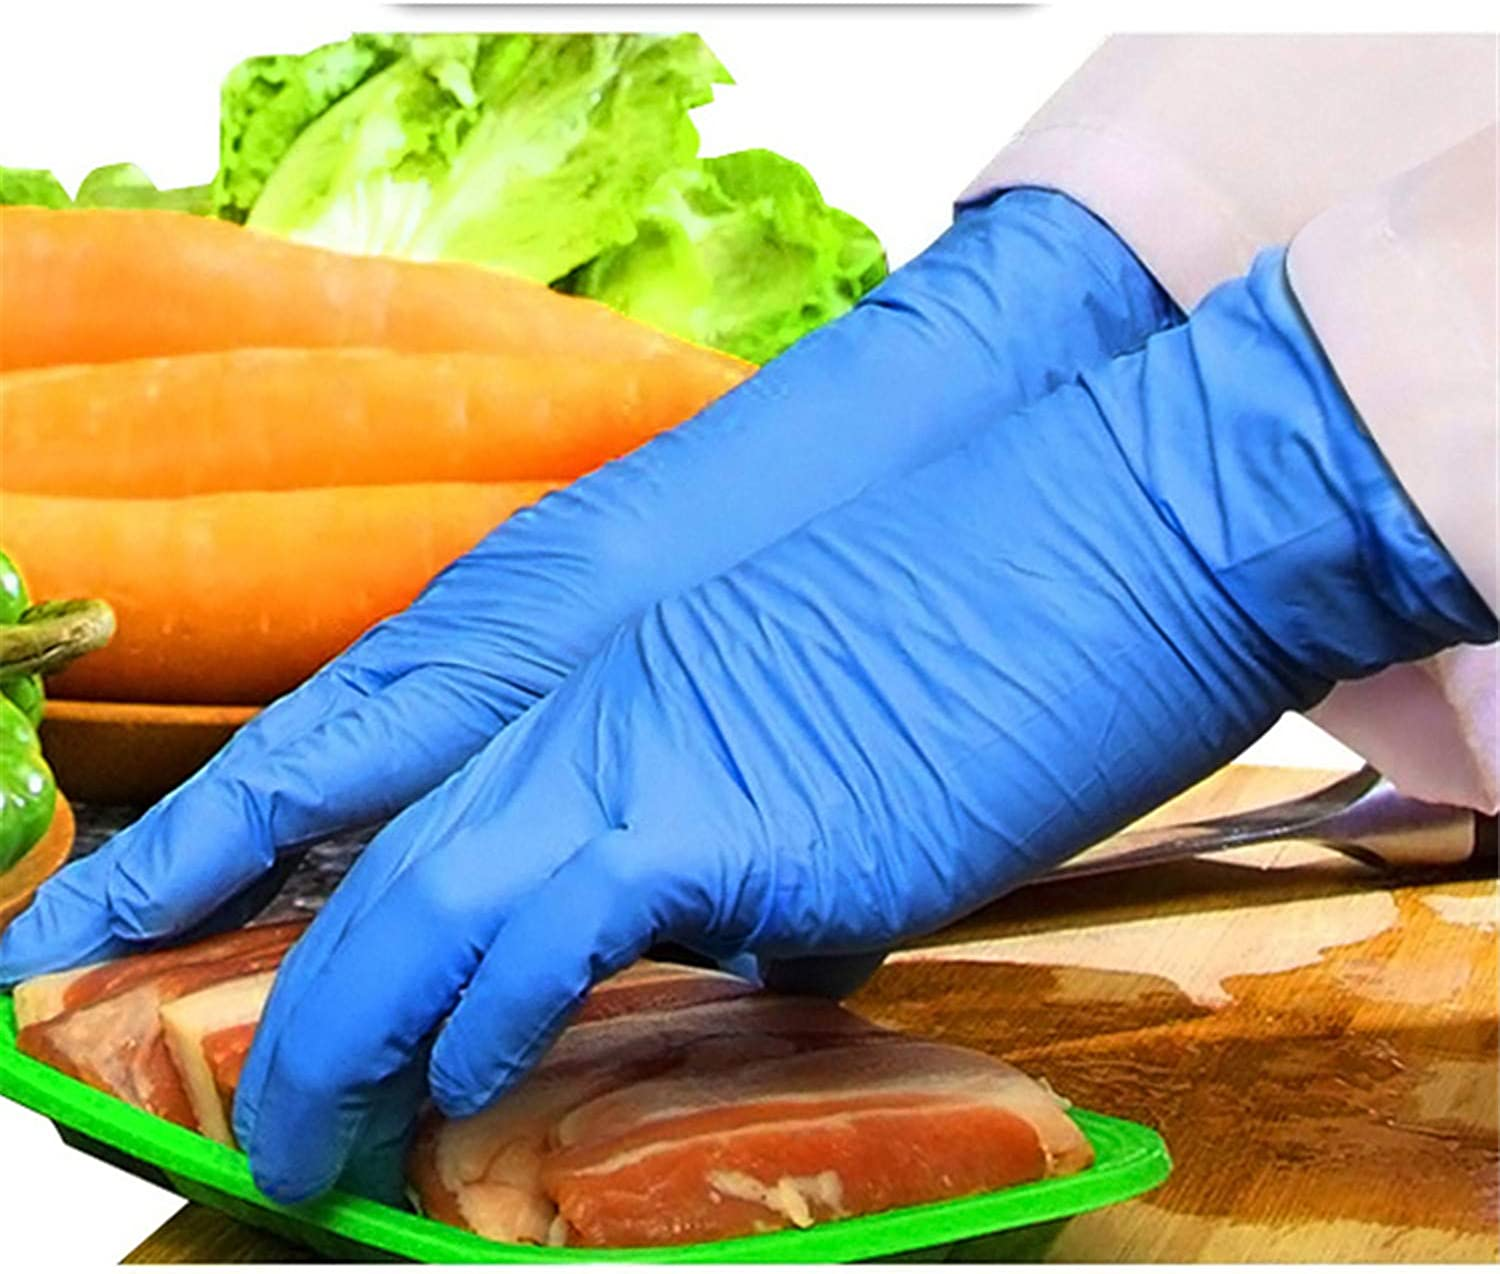 Andongnywell 100PCS Industrial Purple Nitrile Gloves Disposable Gloves Protective Gloves Safety Working Gloves Nitrilegloves